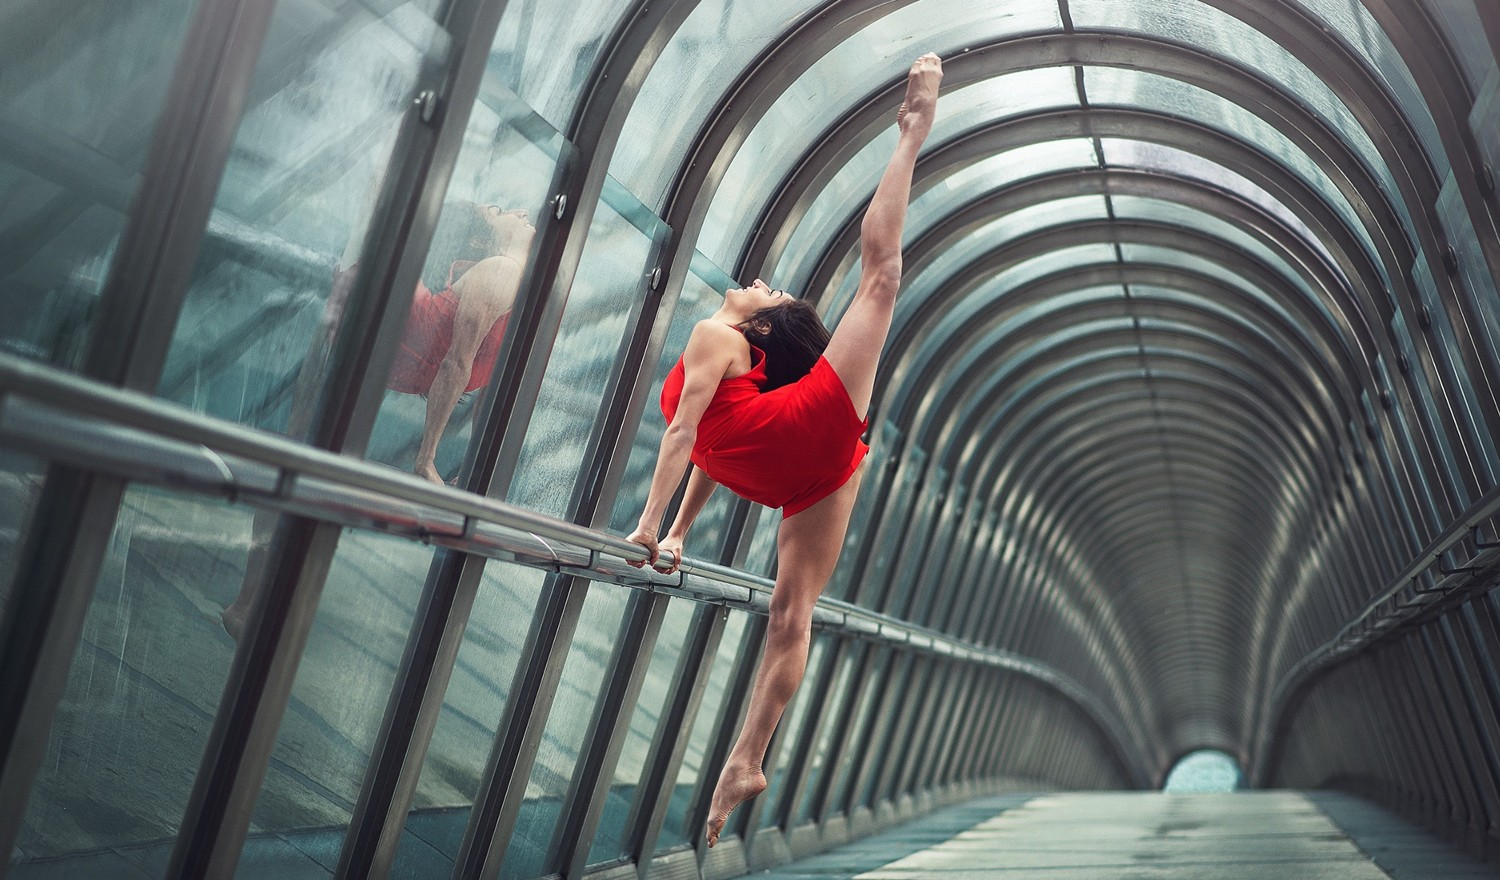 Stunning Photos of Gymnasts & Dancers Performing In Real Life